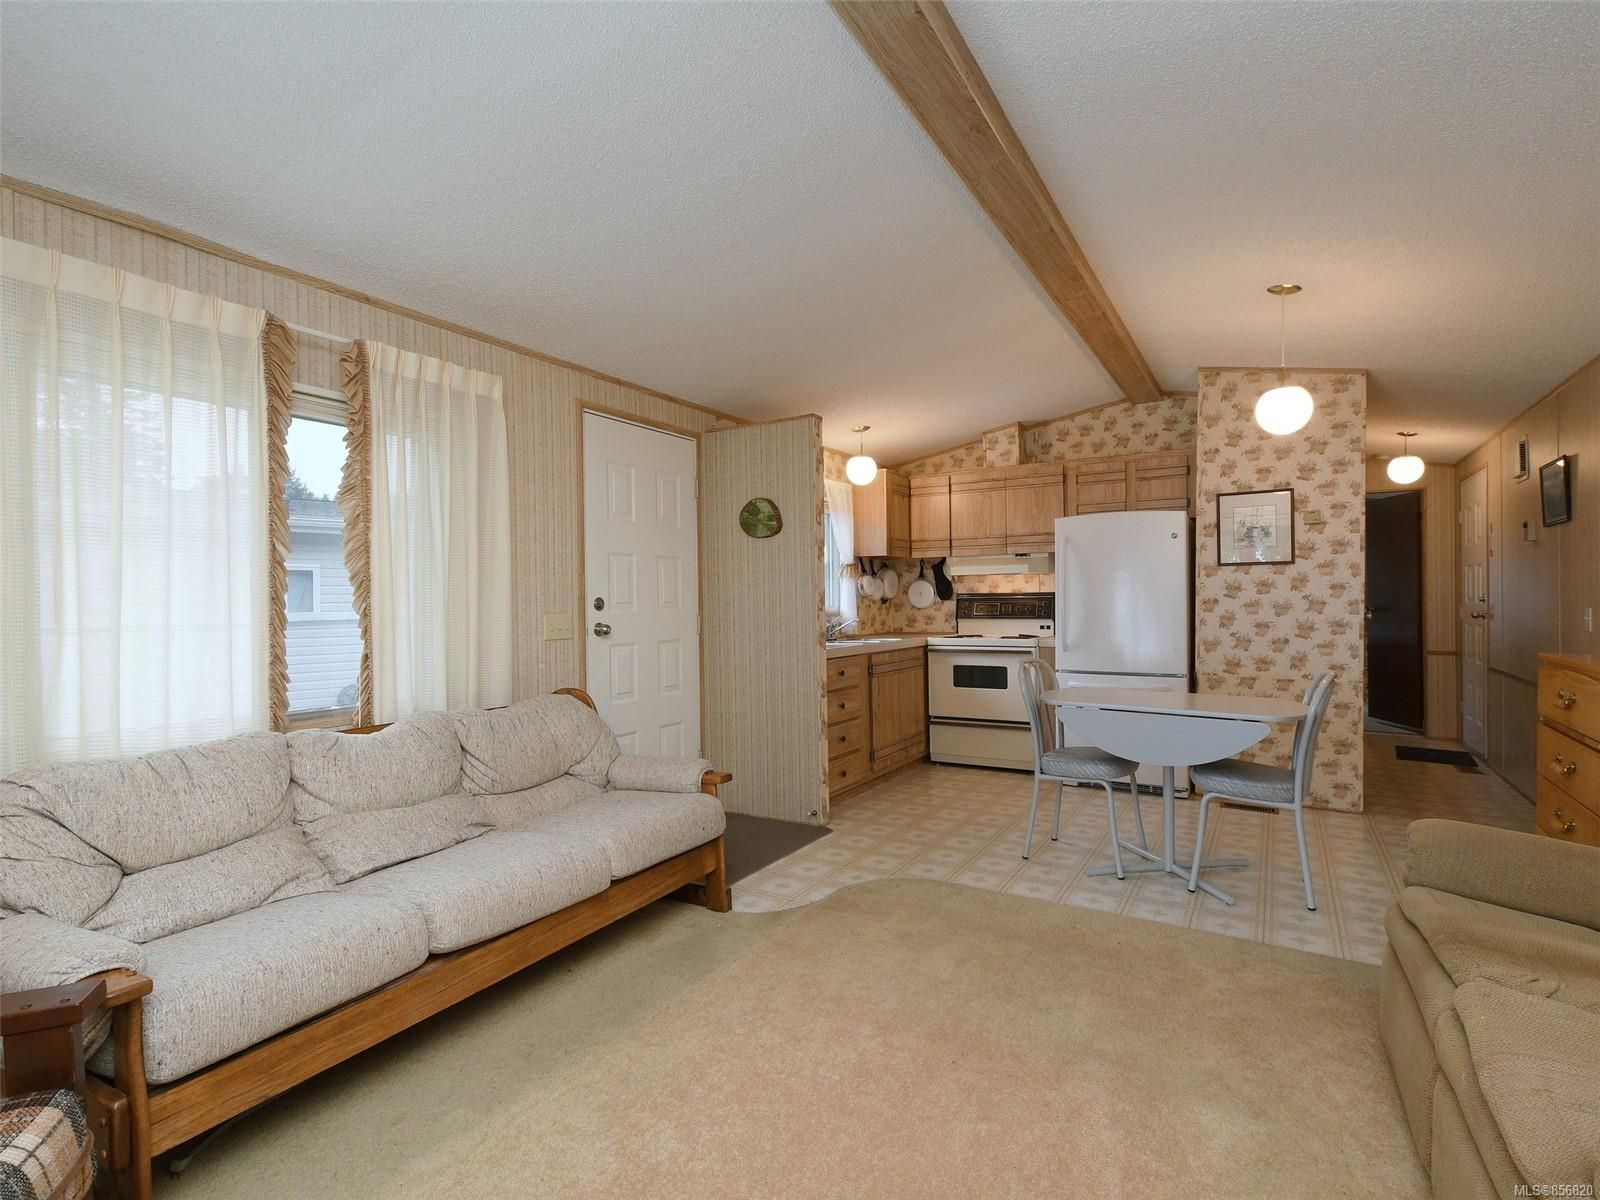 Photo 4: Photos: 25 7871 West Coast Rd in : Sk Kemp Lake Manufactured Home for sale (Sooke)  : MLS®# 856820